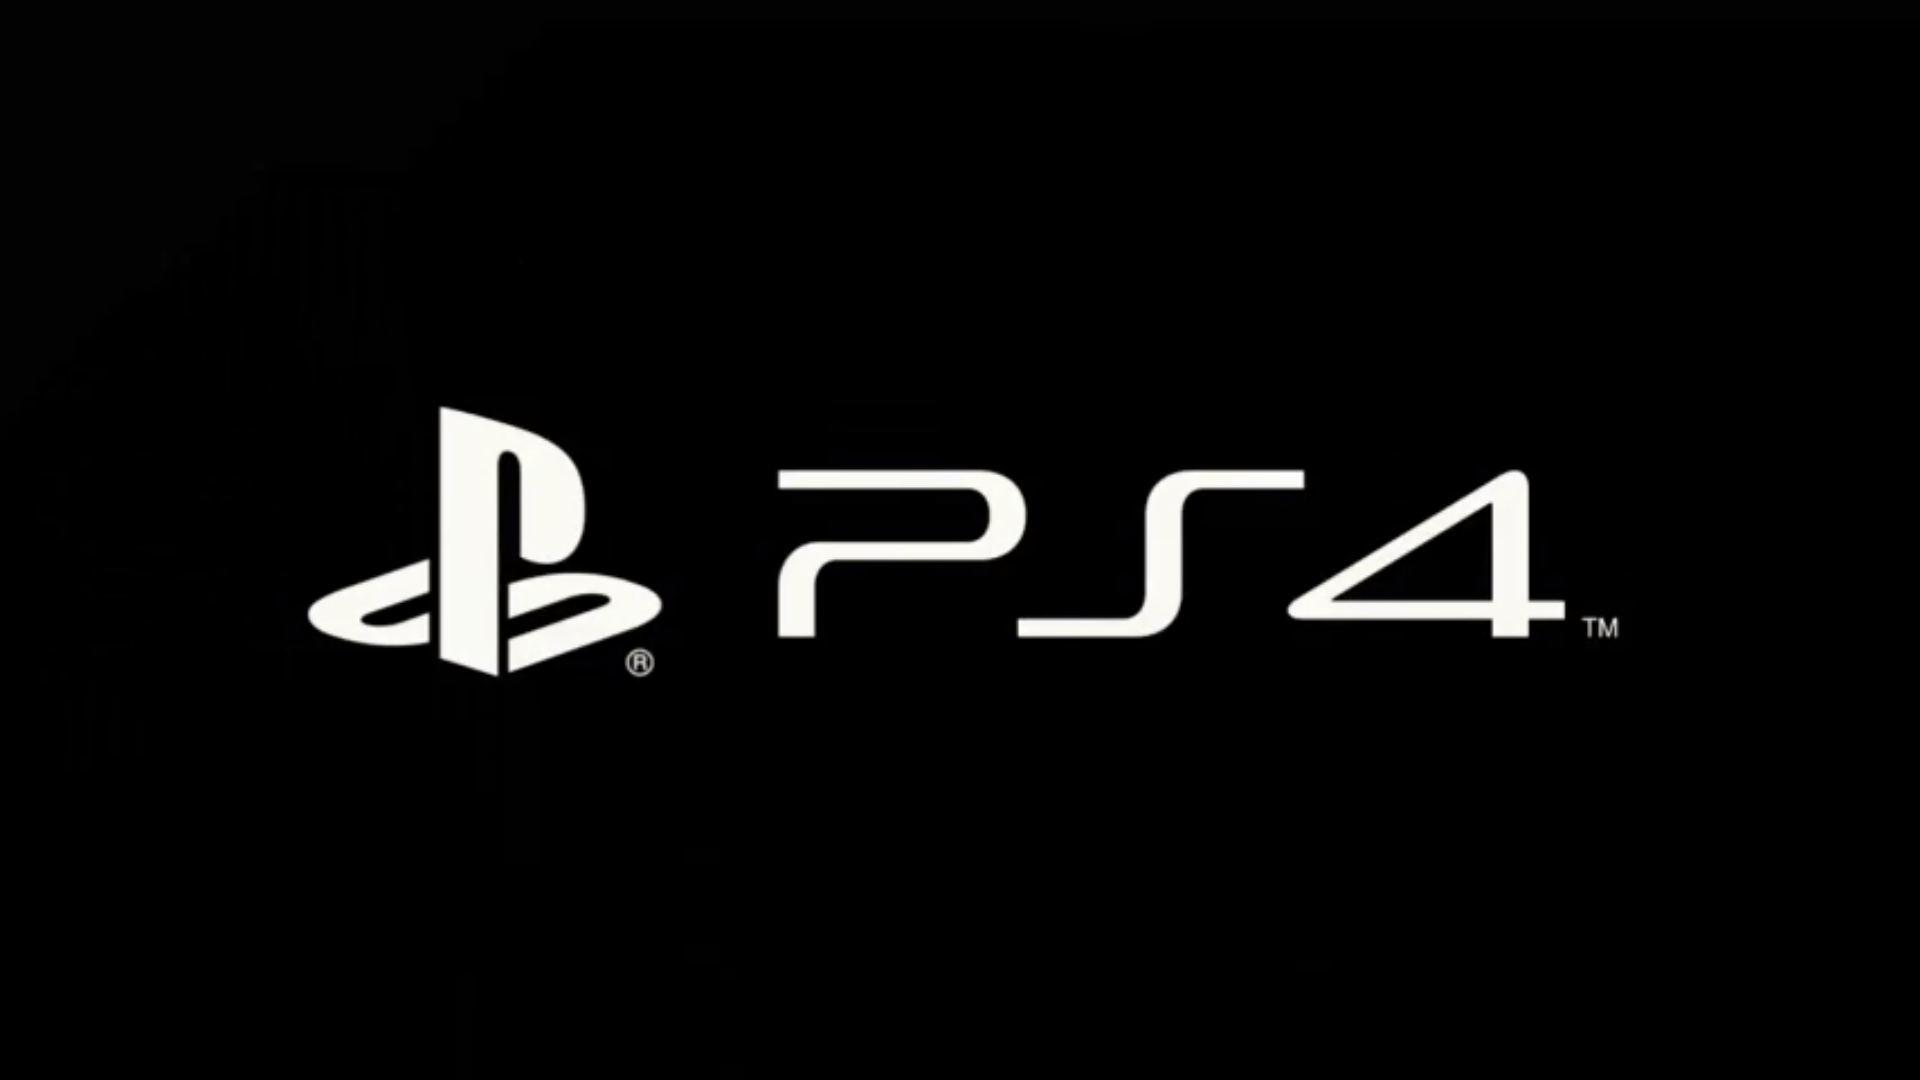 DOWNLOAD WALLPAPER PS4 logo - FULL SIZE ...